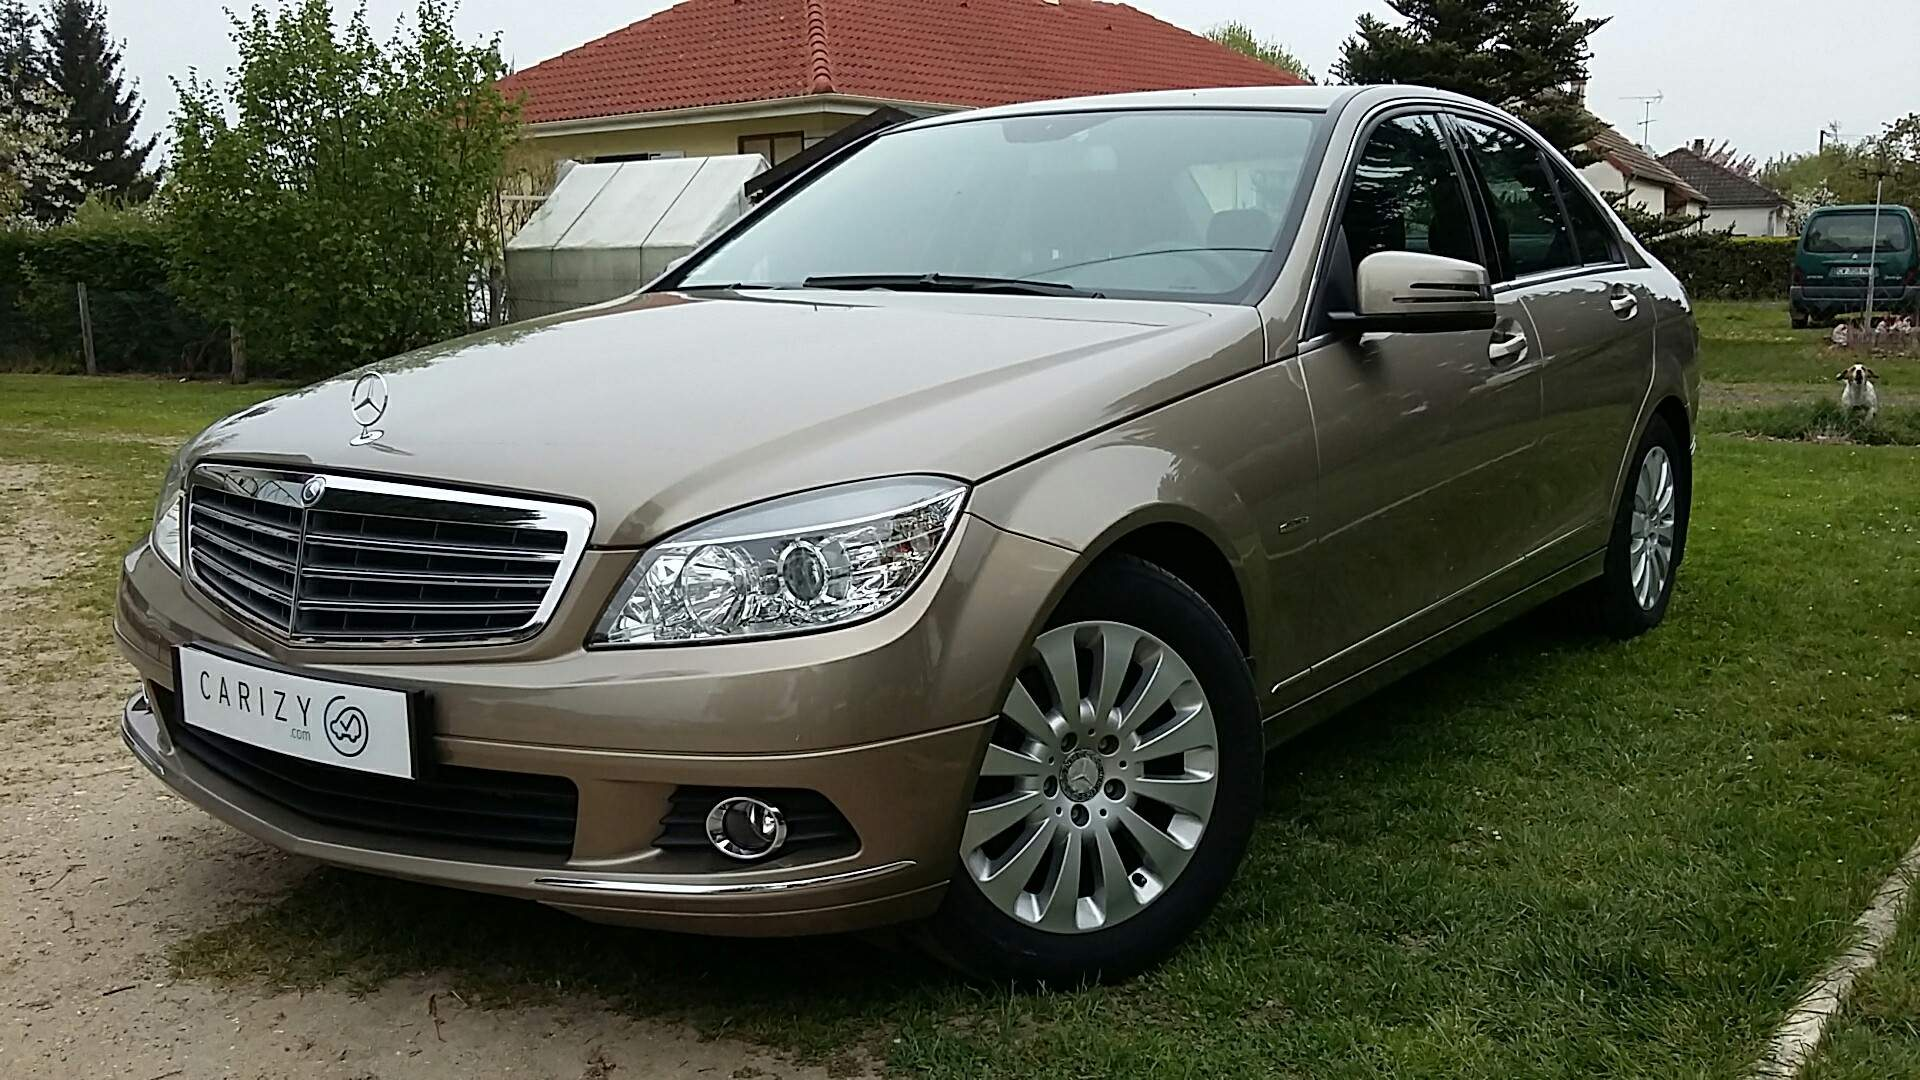 voiture mercedes classe c 220 cdi 170 blueefficiency elega occasion diesel 2009 114900 km. Black Bedroom Furniture Sets. Home Design Ideas